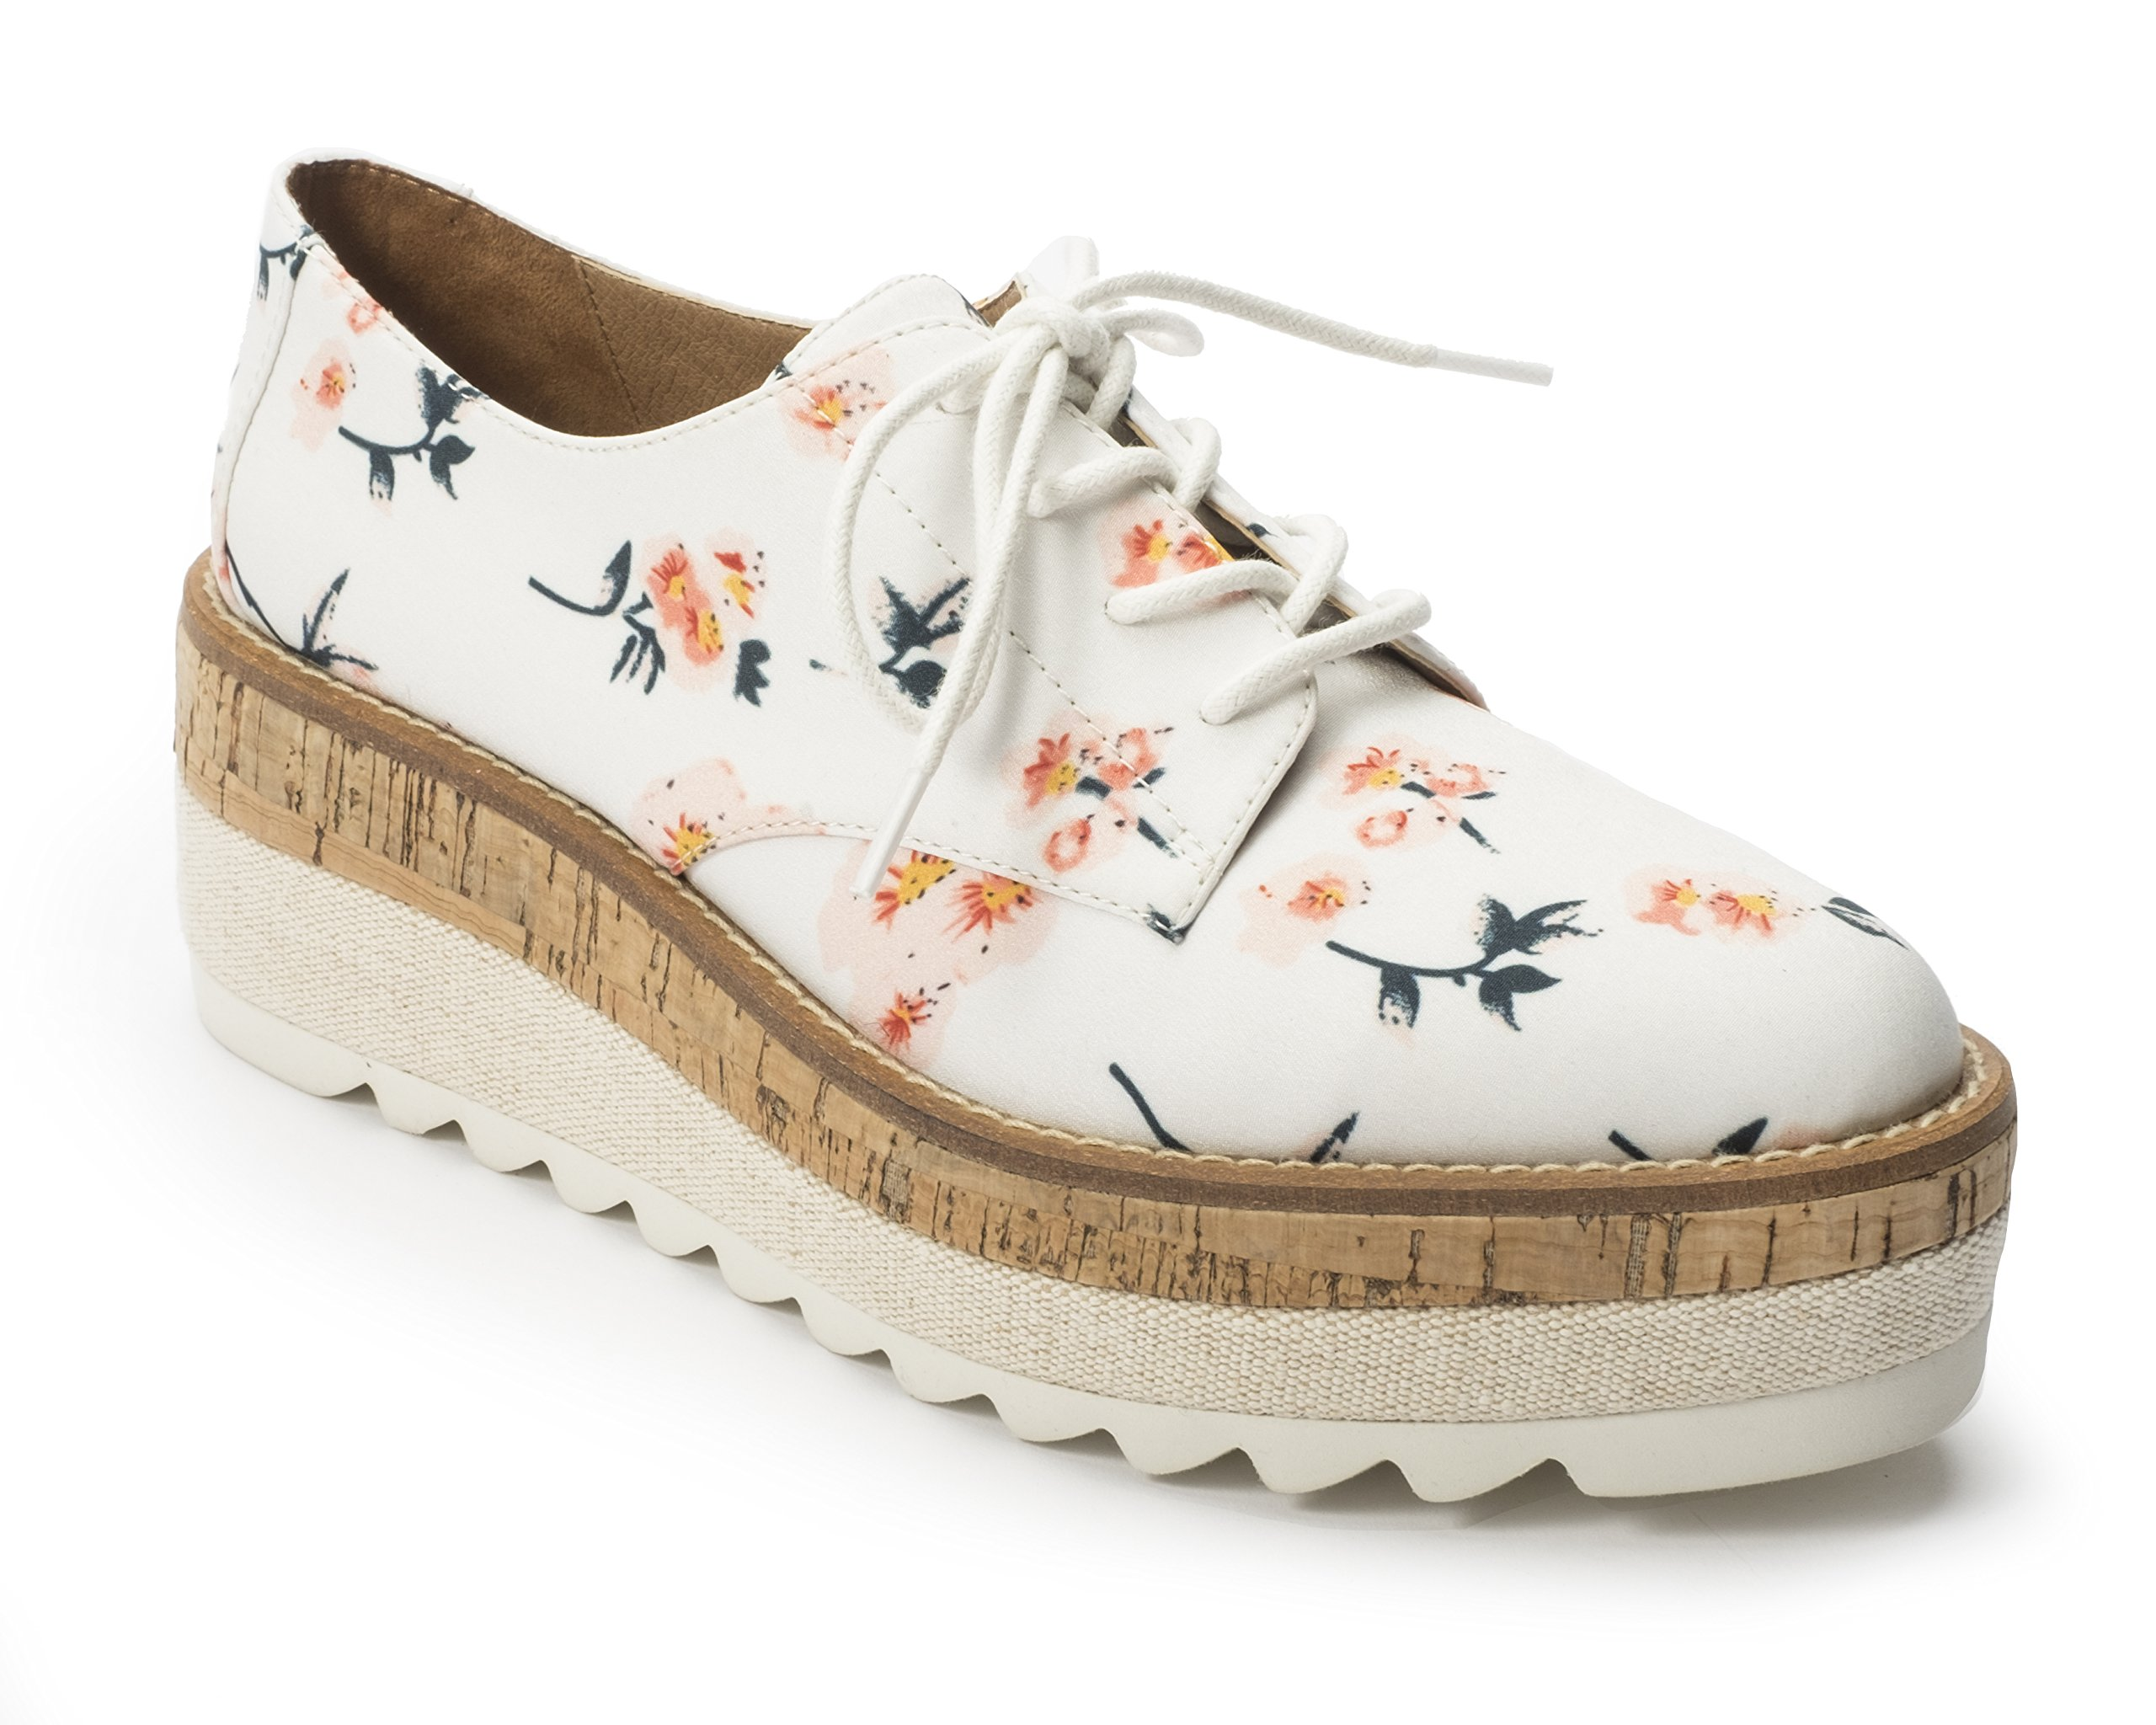 Jane and the Shoe Women's Jasmin White Floral Platform Oxford Size 8